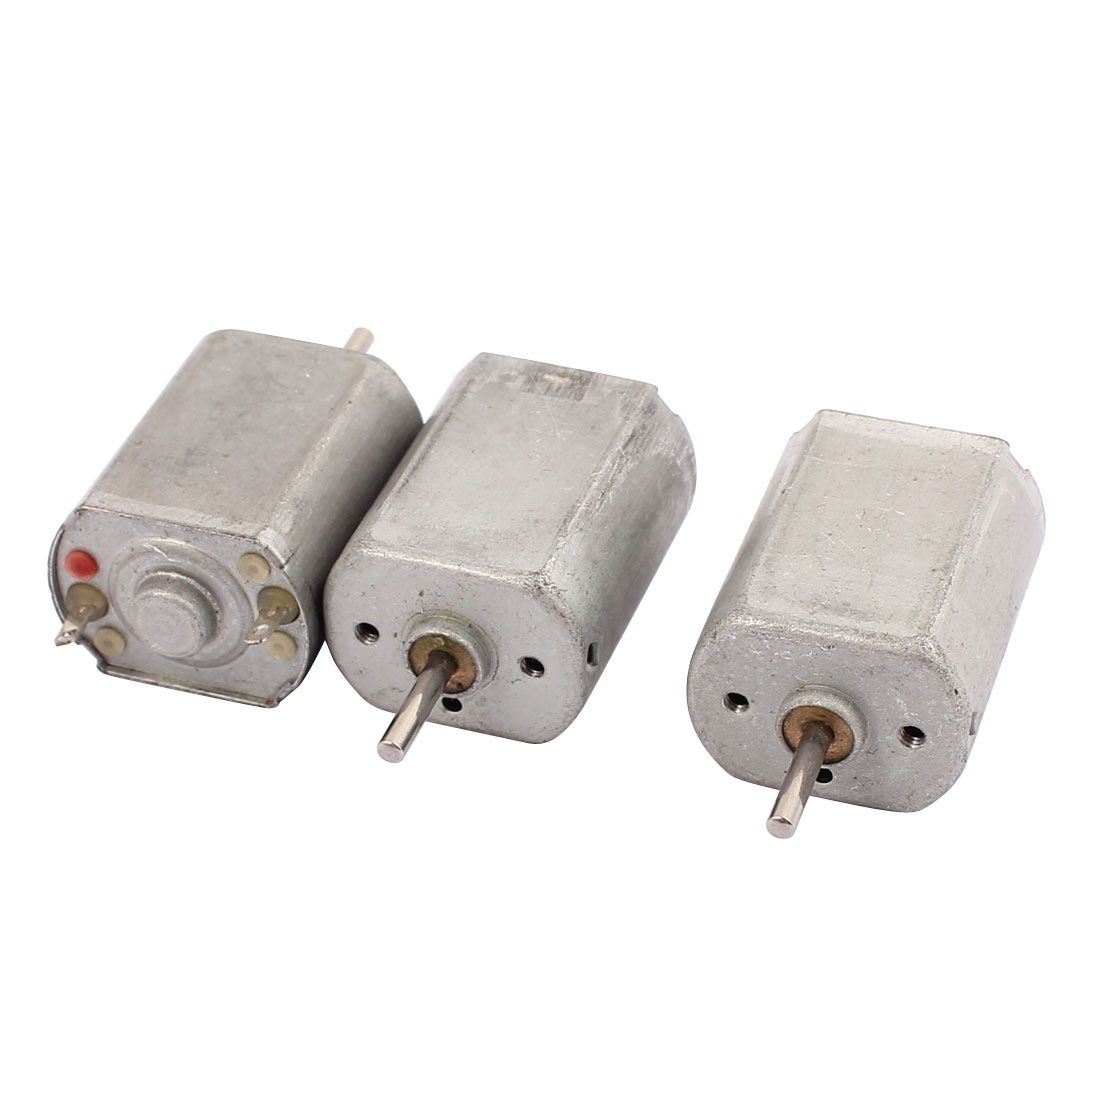 3Pcs DC 1.5-6V 12000RPM Large Torque Micro Vibration Motor for Electric Massage